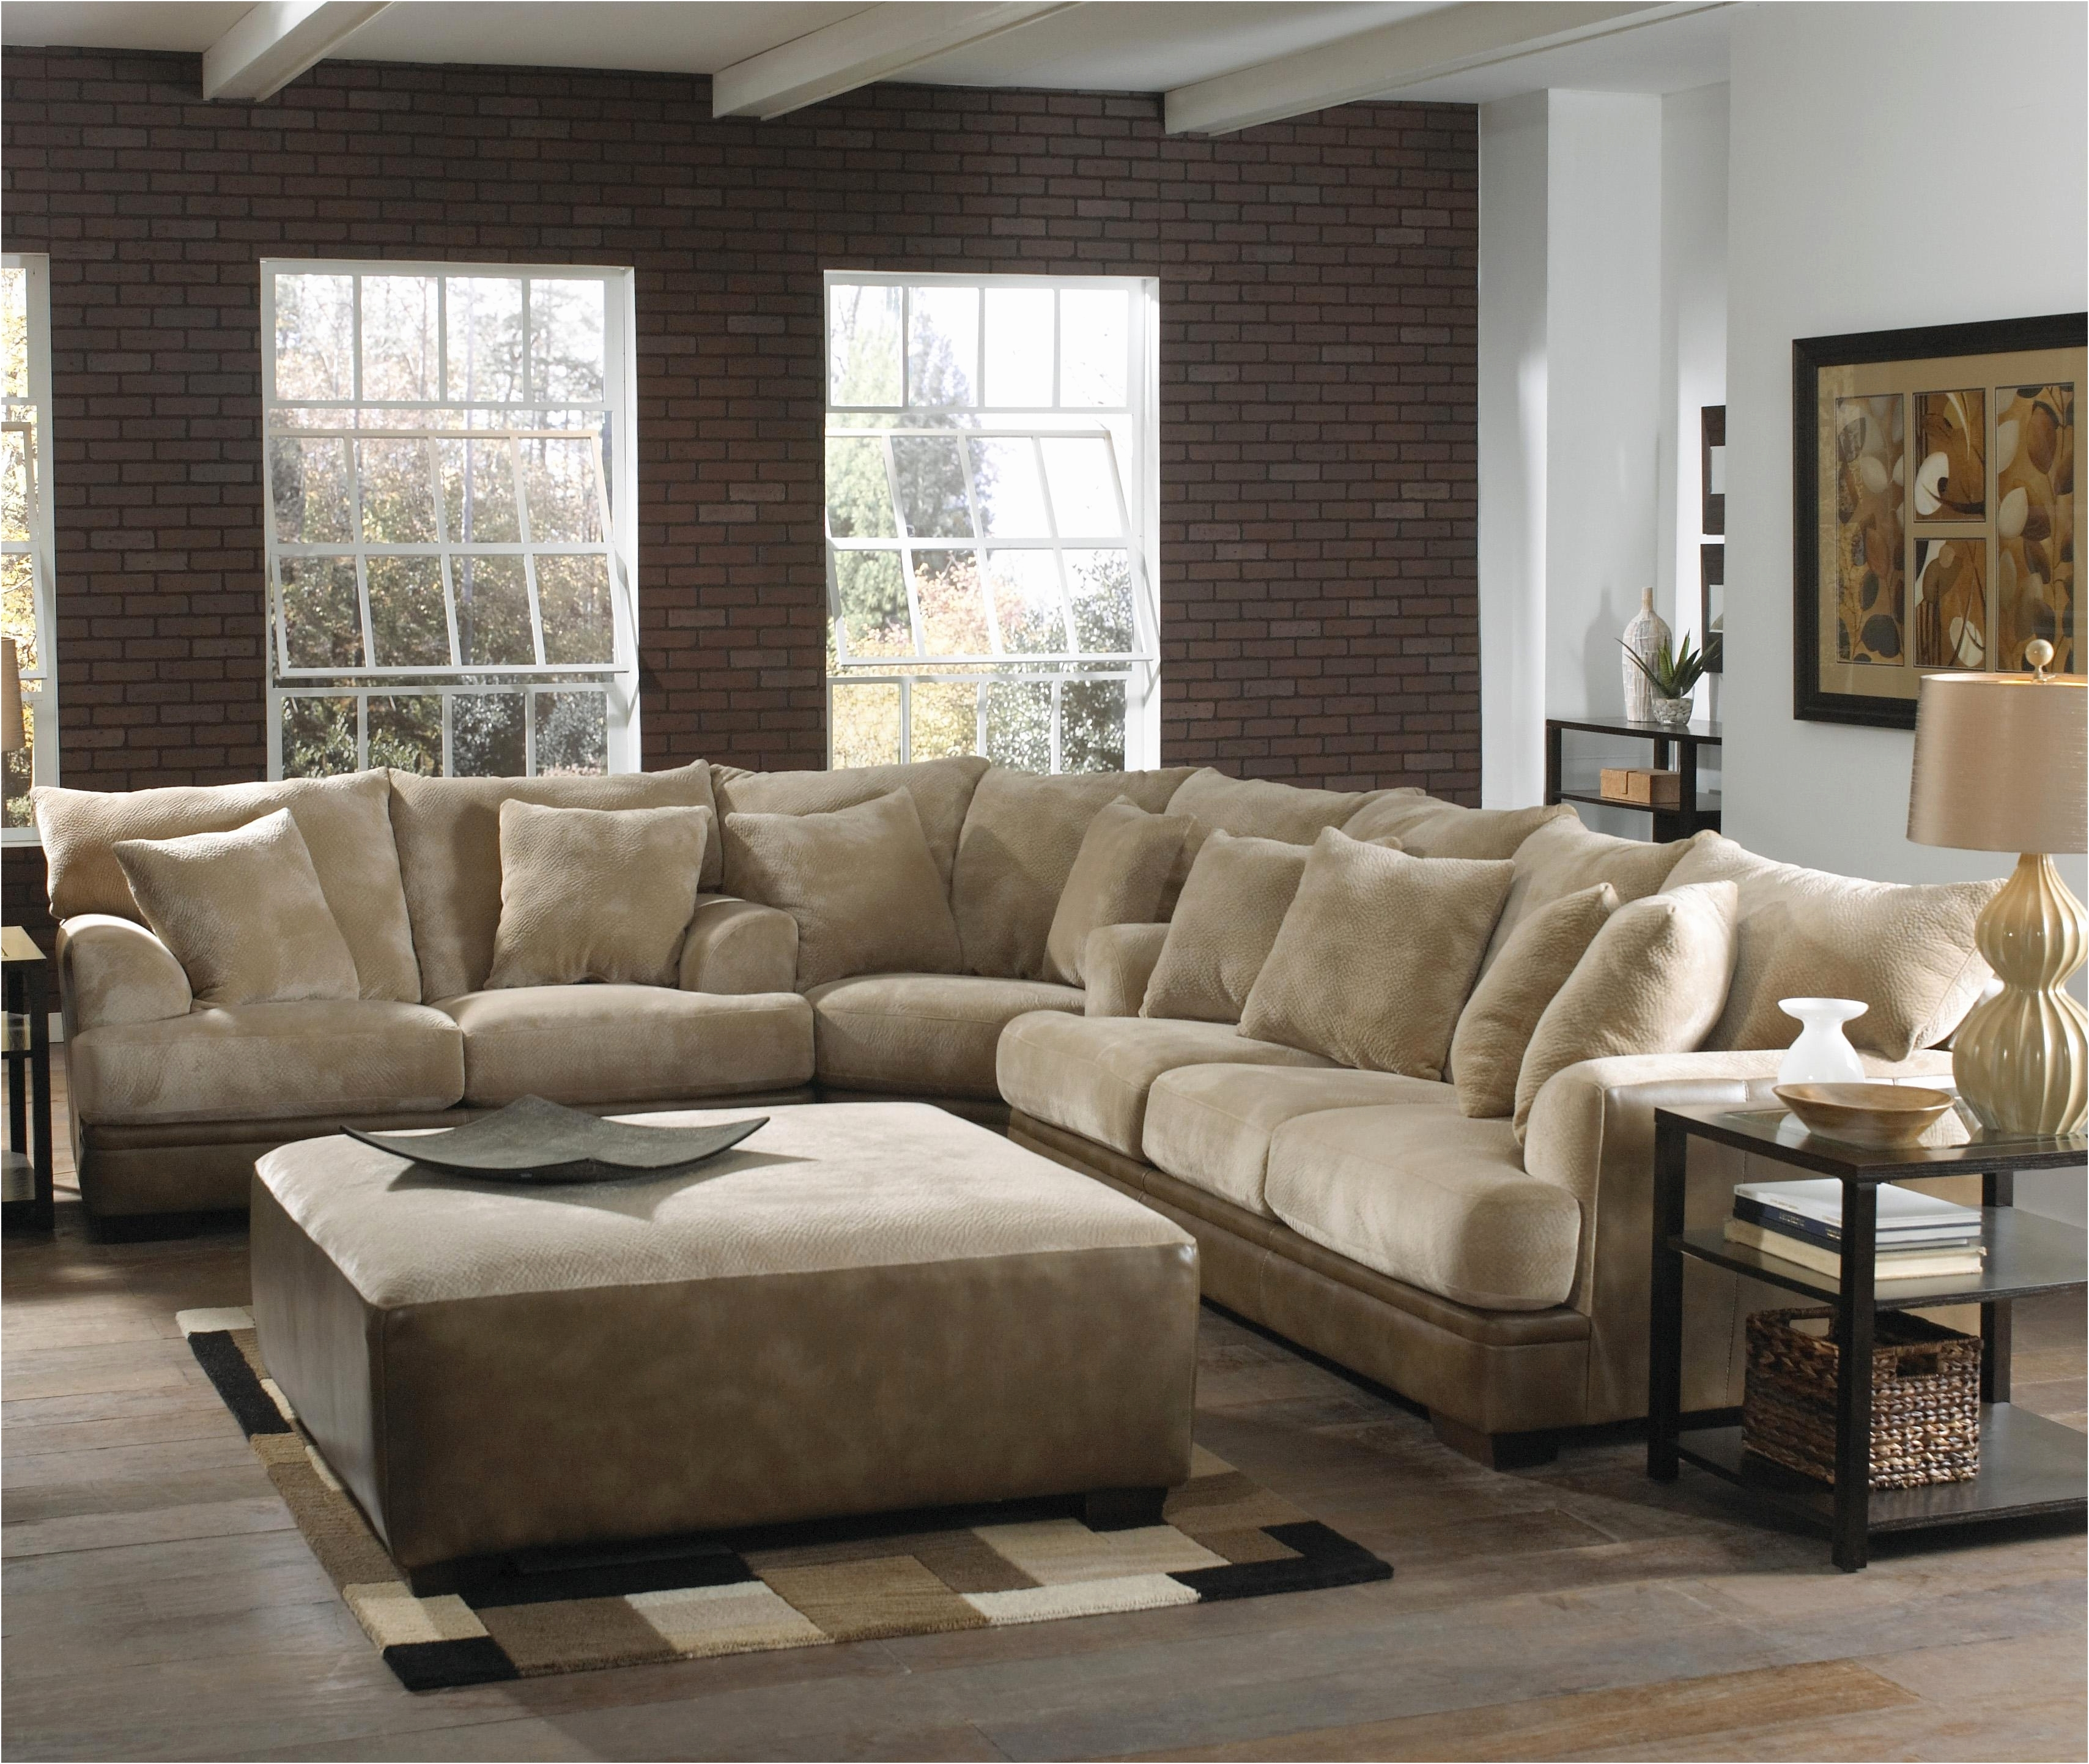 Plush Sectional Sofa Picture Of Sofas Beautiful Kane S Oversized With Plush Sectional Sofas (Image 5 of 10)